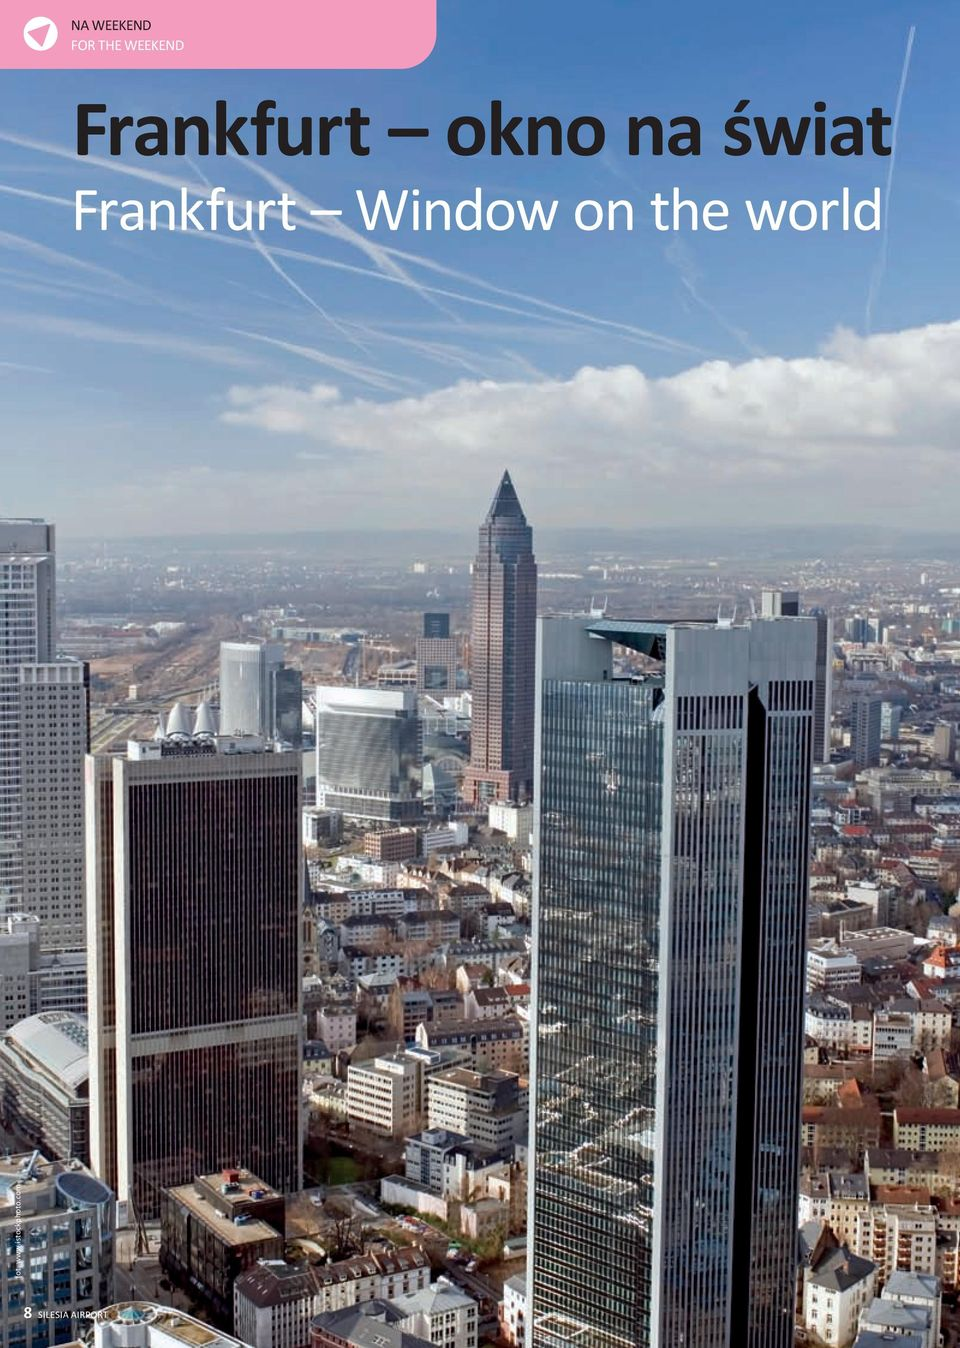 Frankfurt Window on the world